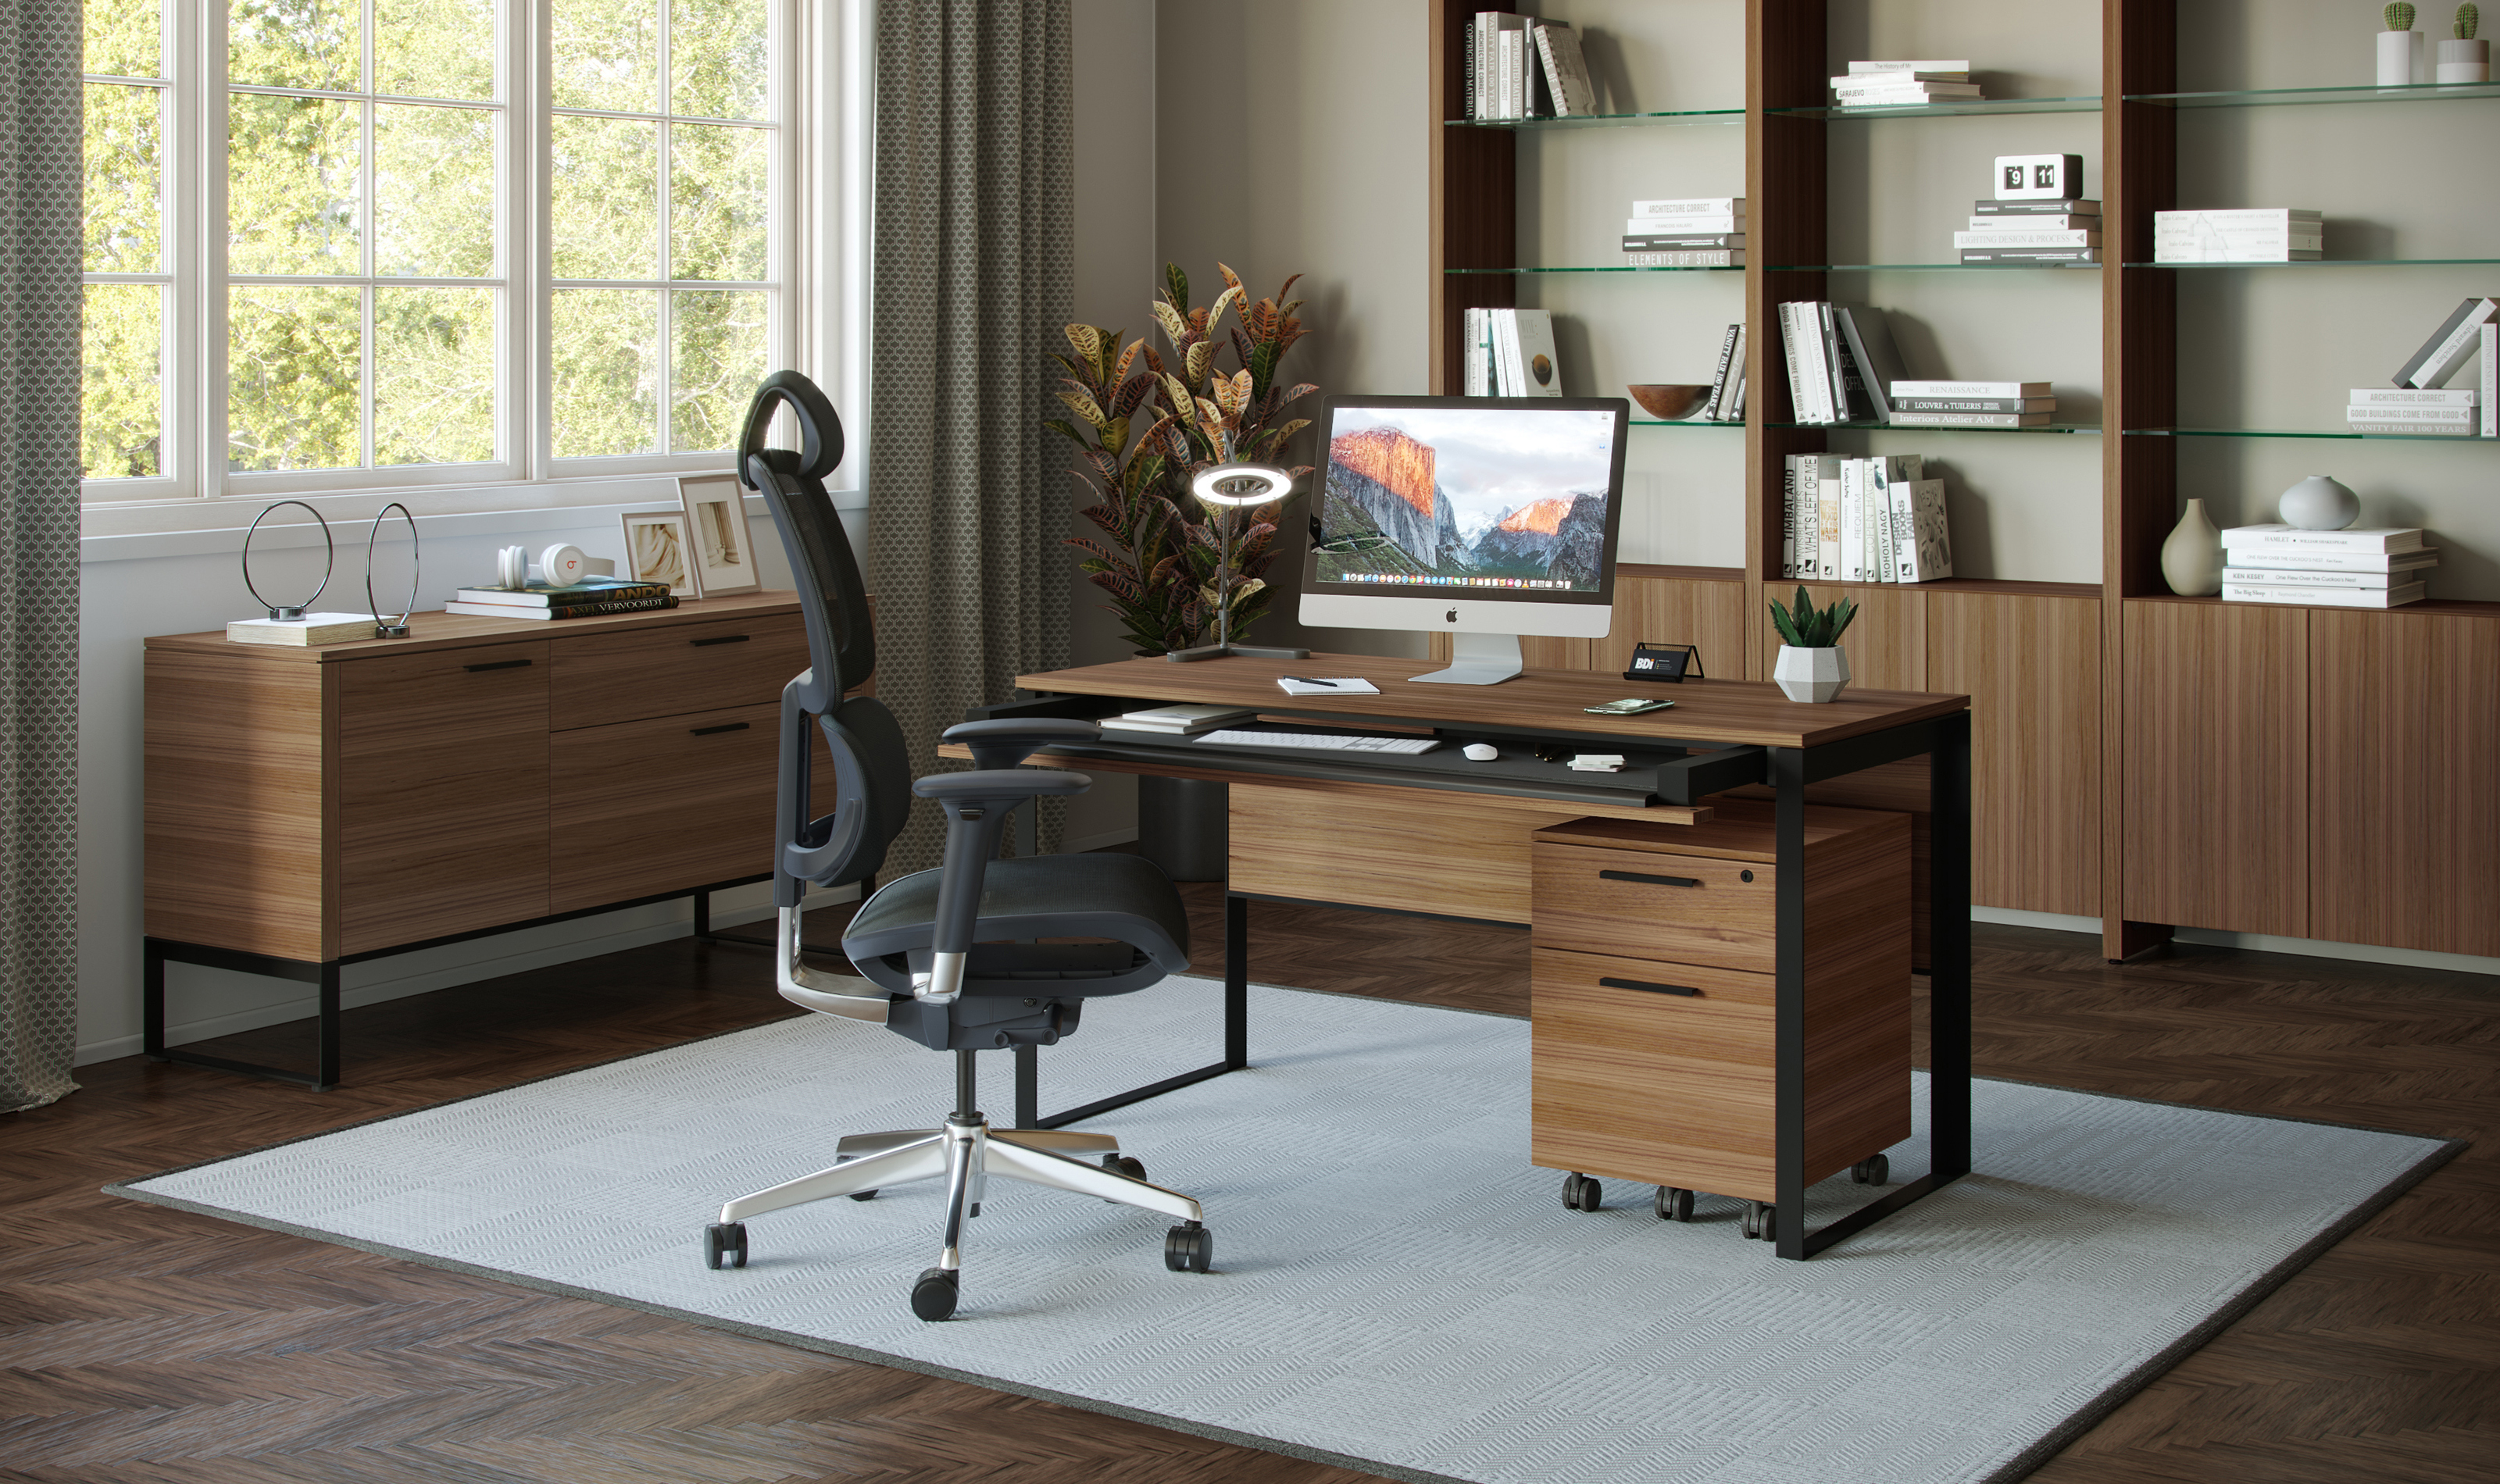 Linea modern home office collection by BDI furniture, shown in Natural Walnut finish.